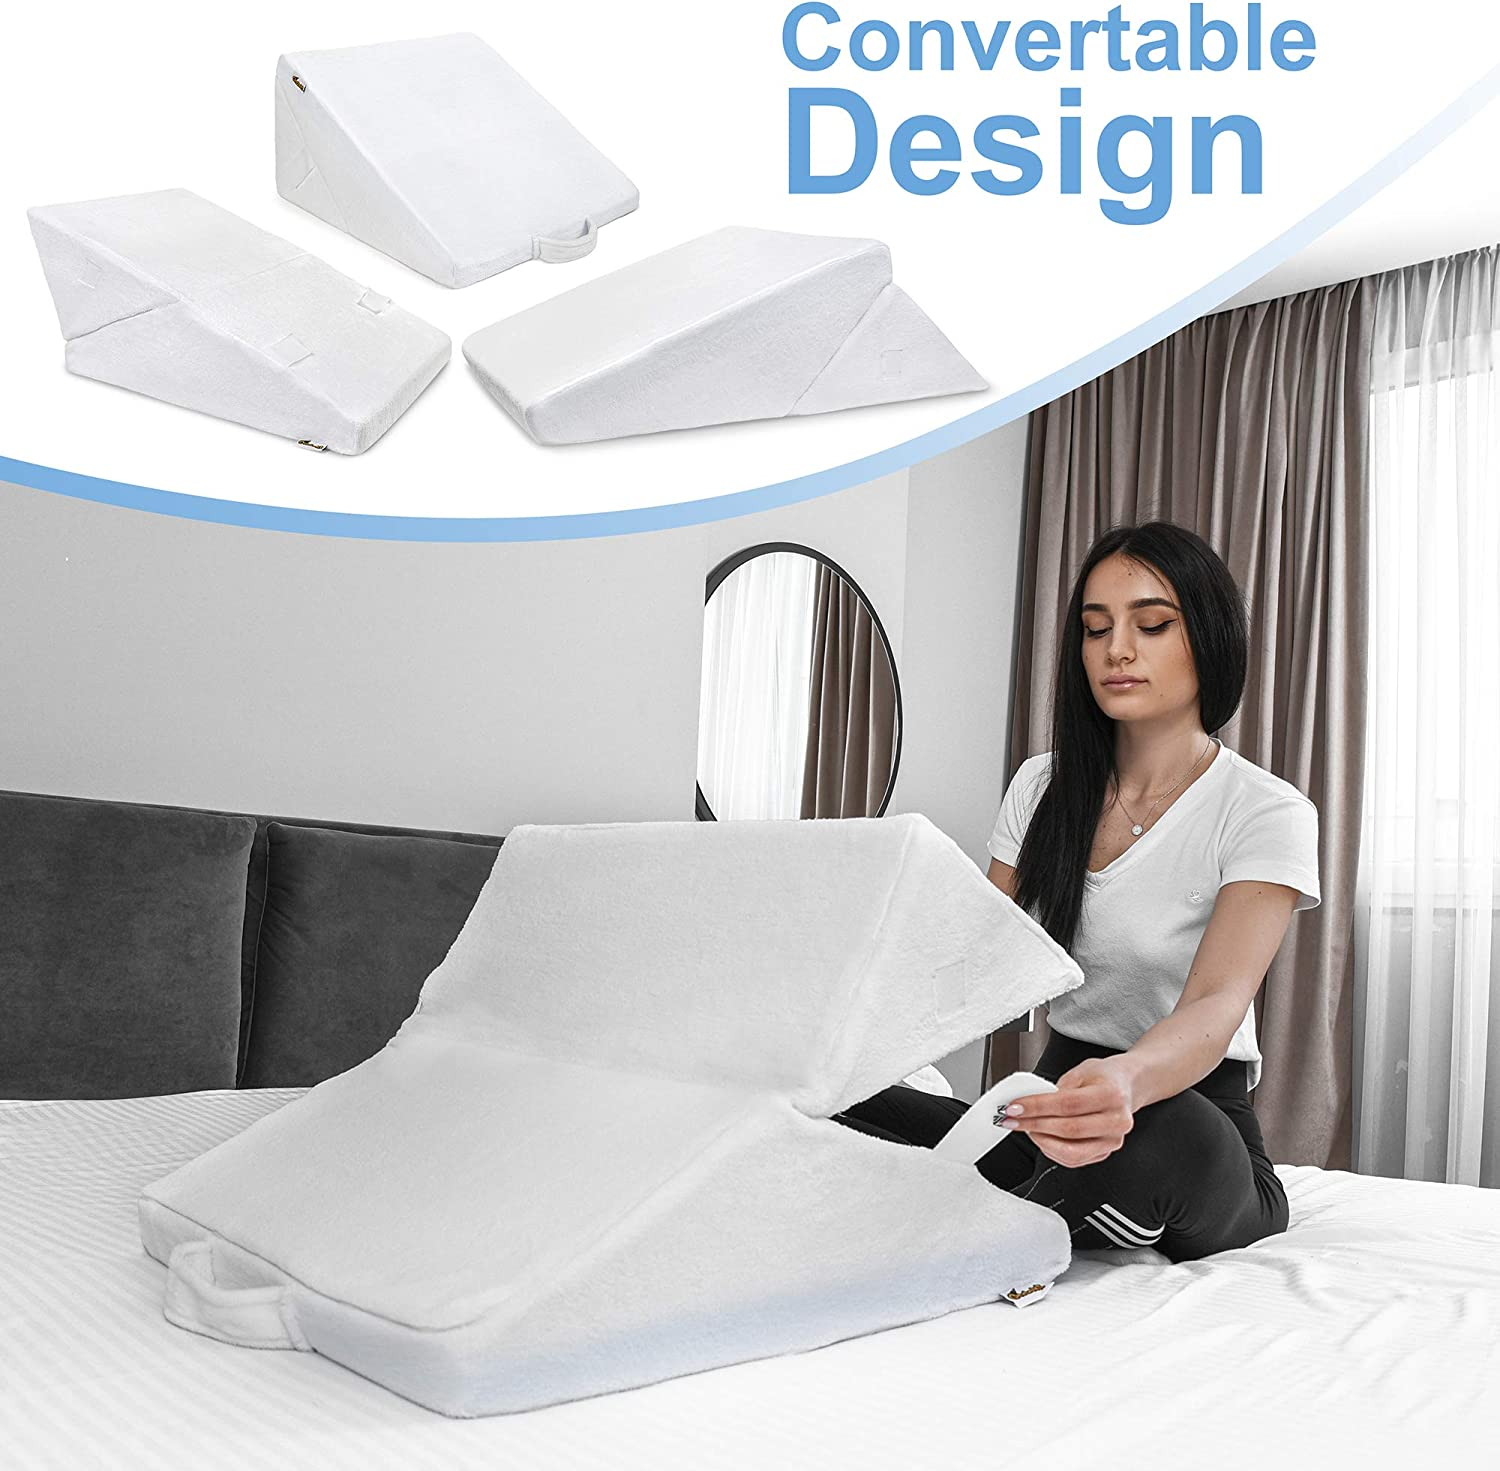 Bed Wedge Pillow – Multipurpose Adjustable Leg Support Pillow – Cooling Gel Memory Foam Top - Helps for Acid Reflux Heartburn, Allergies, Snoring - Machine Washable Soft Plush Cover with Handle, White: Home & Kitchen